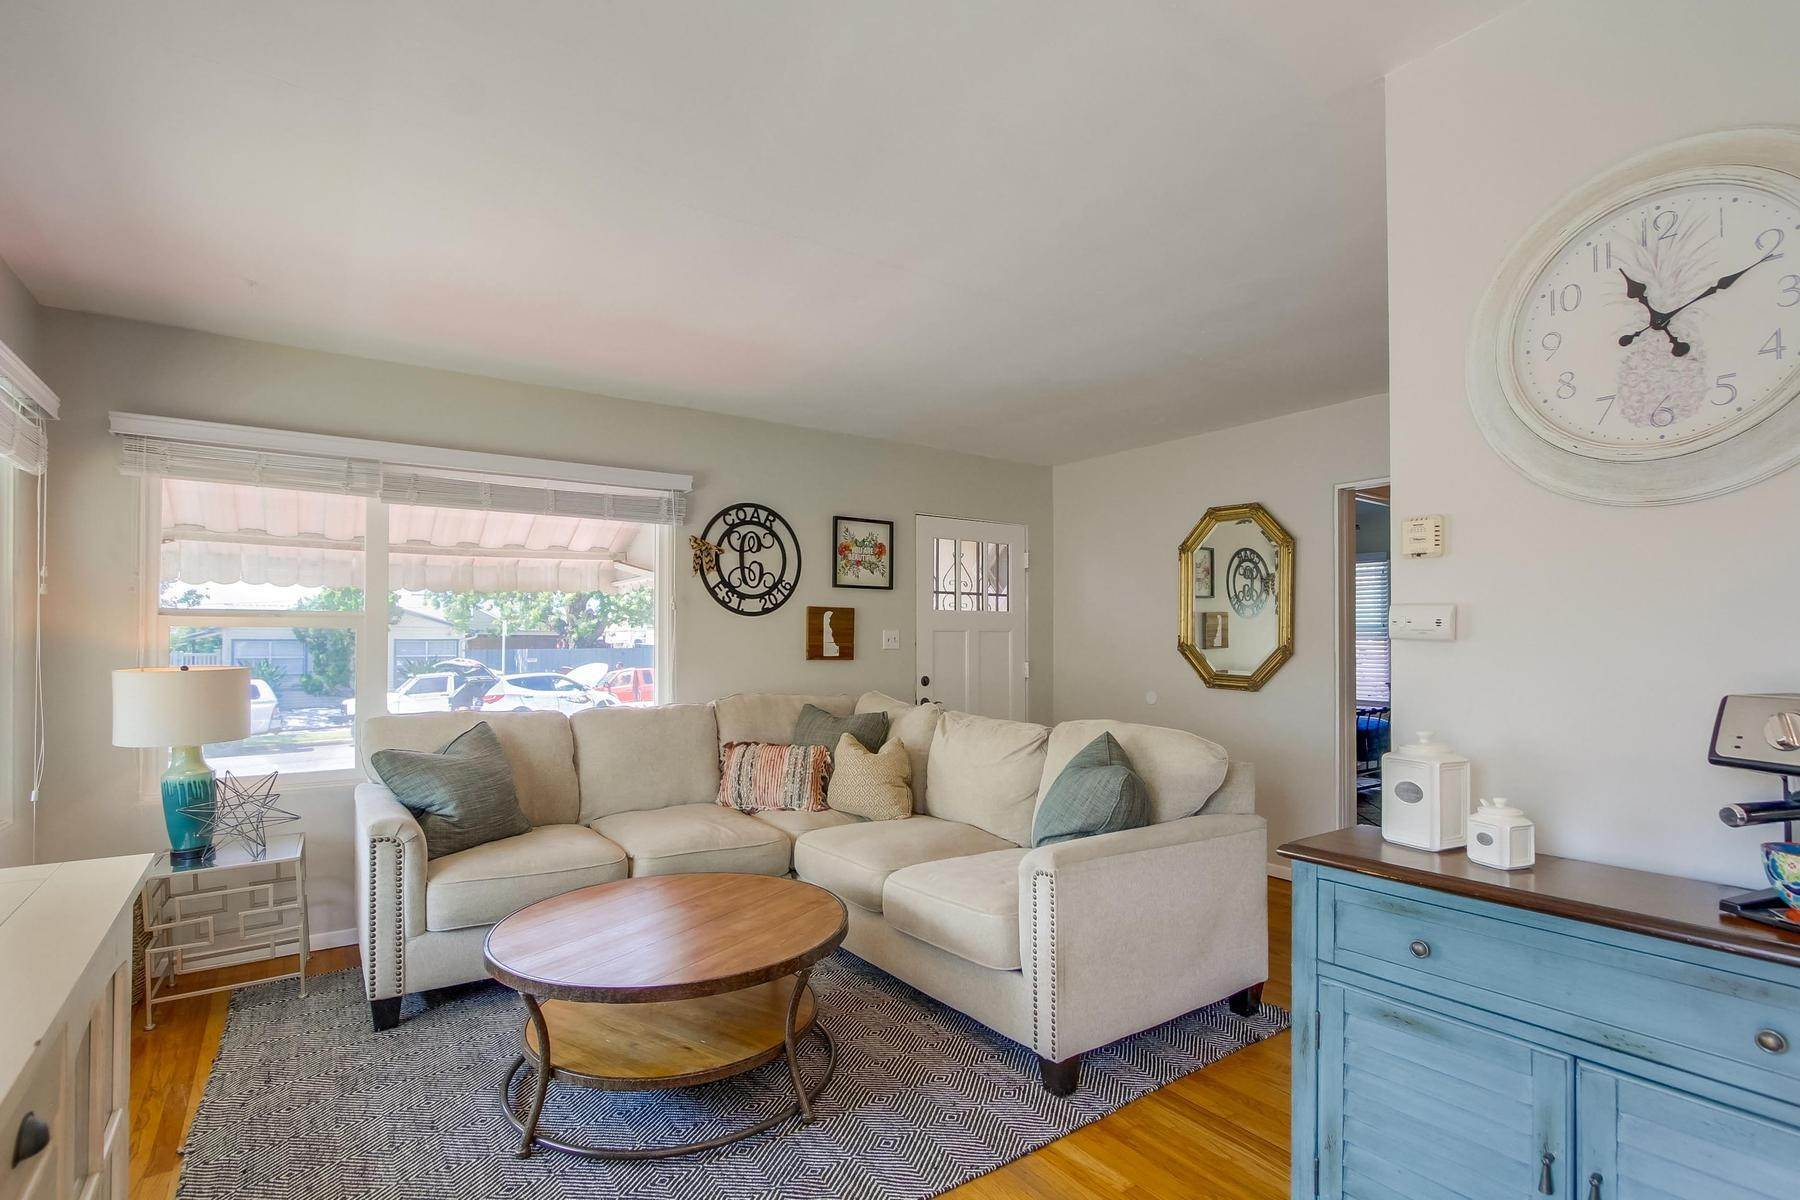 Single Family Homes for Sale at 4917 Bayard Street, North Pacific Beach, Ca, 92109 4917 Bayard Street San Diego, California 92109 United States